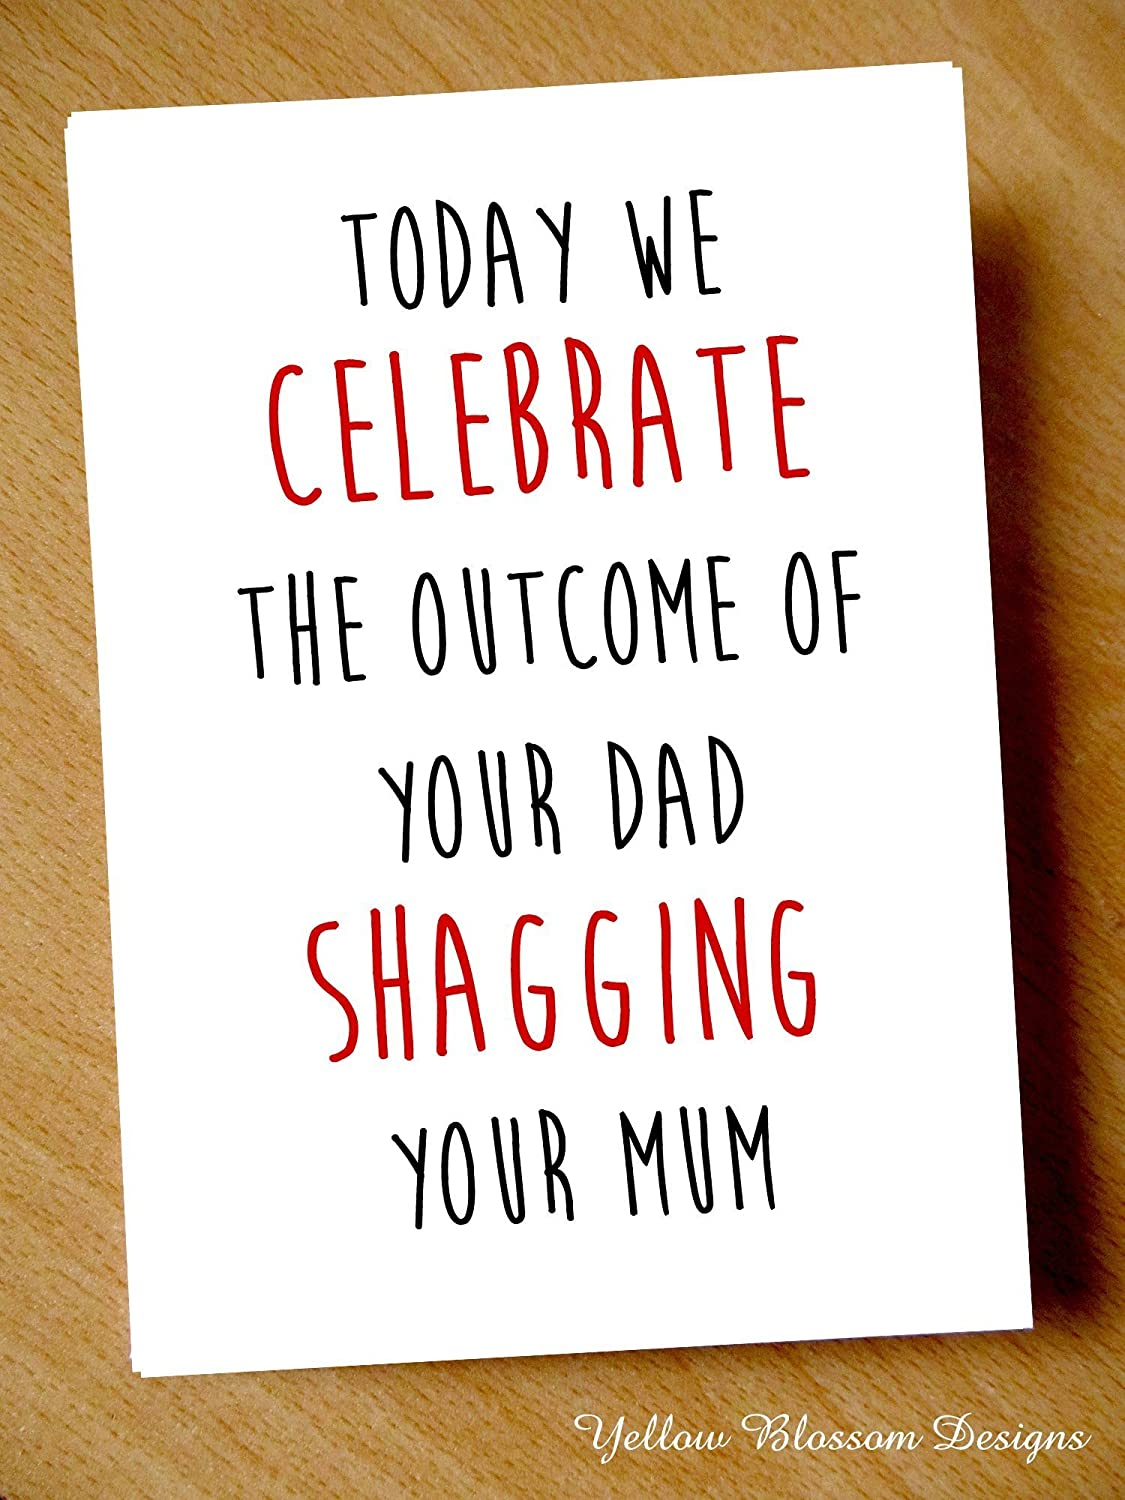 Comical Funny Birthday Greeting Card Today We Celebrate The Outcome Of Your Dad Shagging Mum Best Friend Mate Male Female Embarrassing Awkward Fun